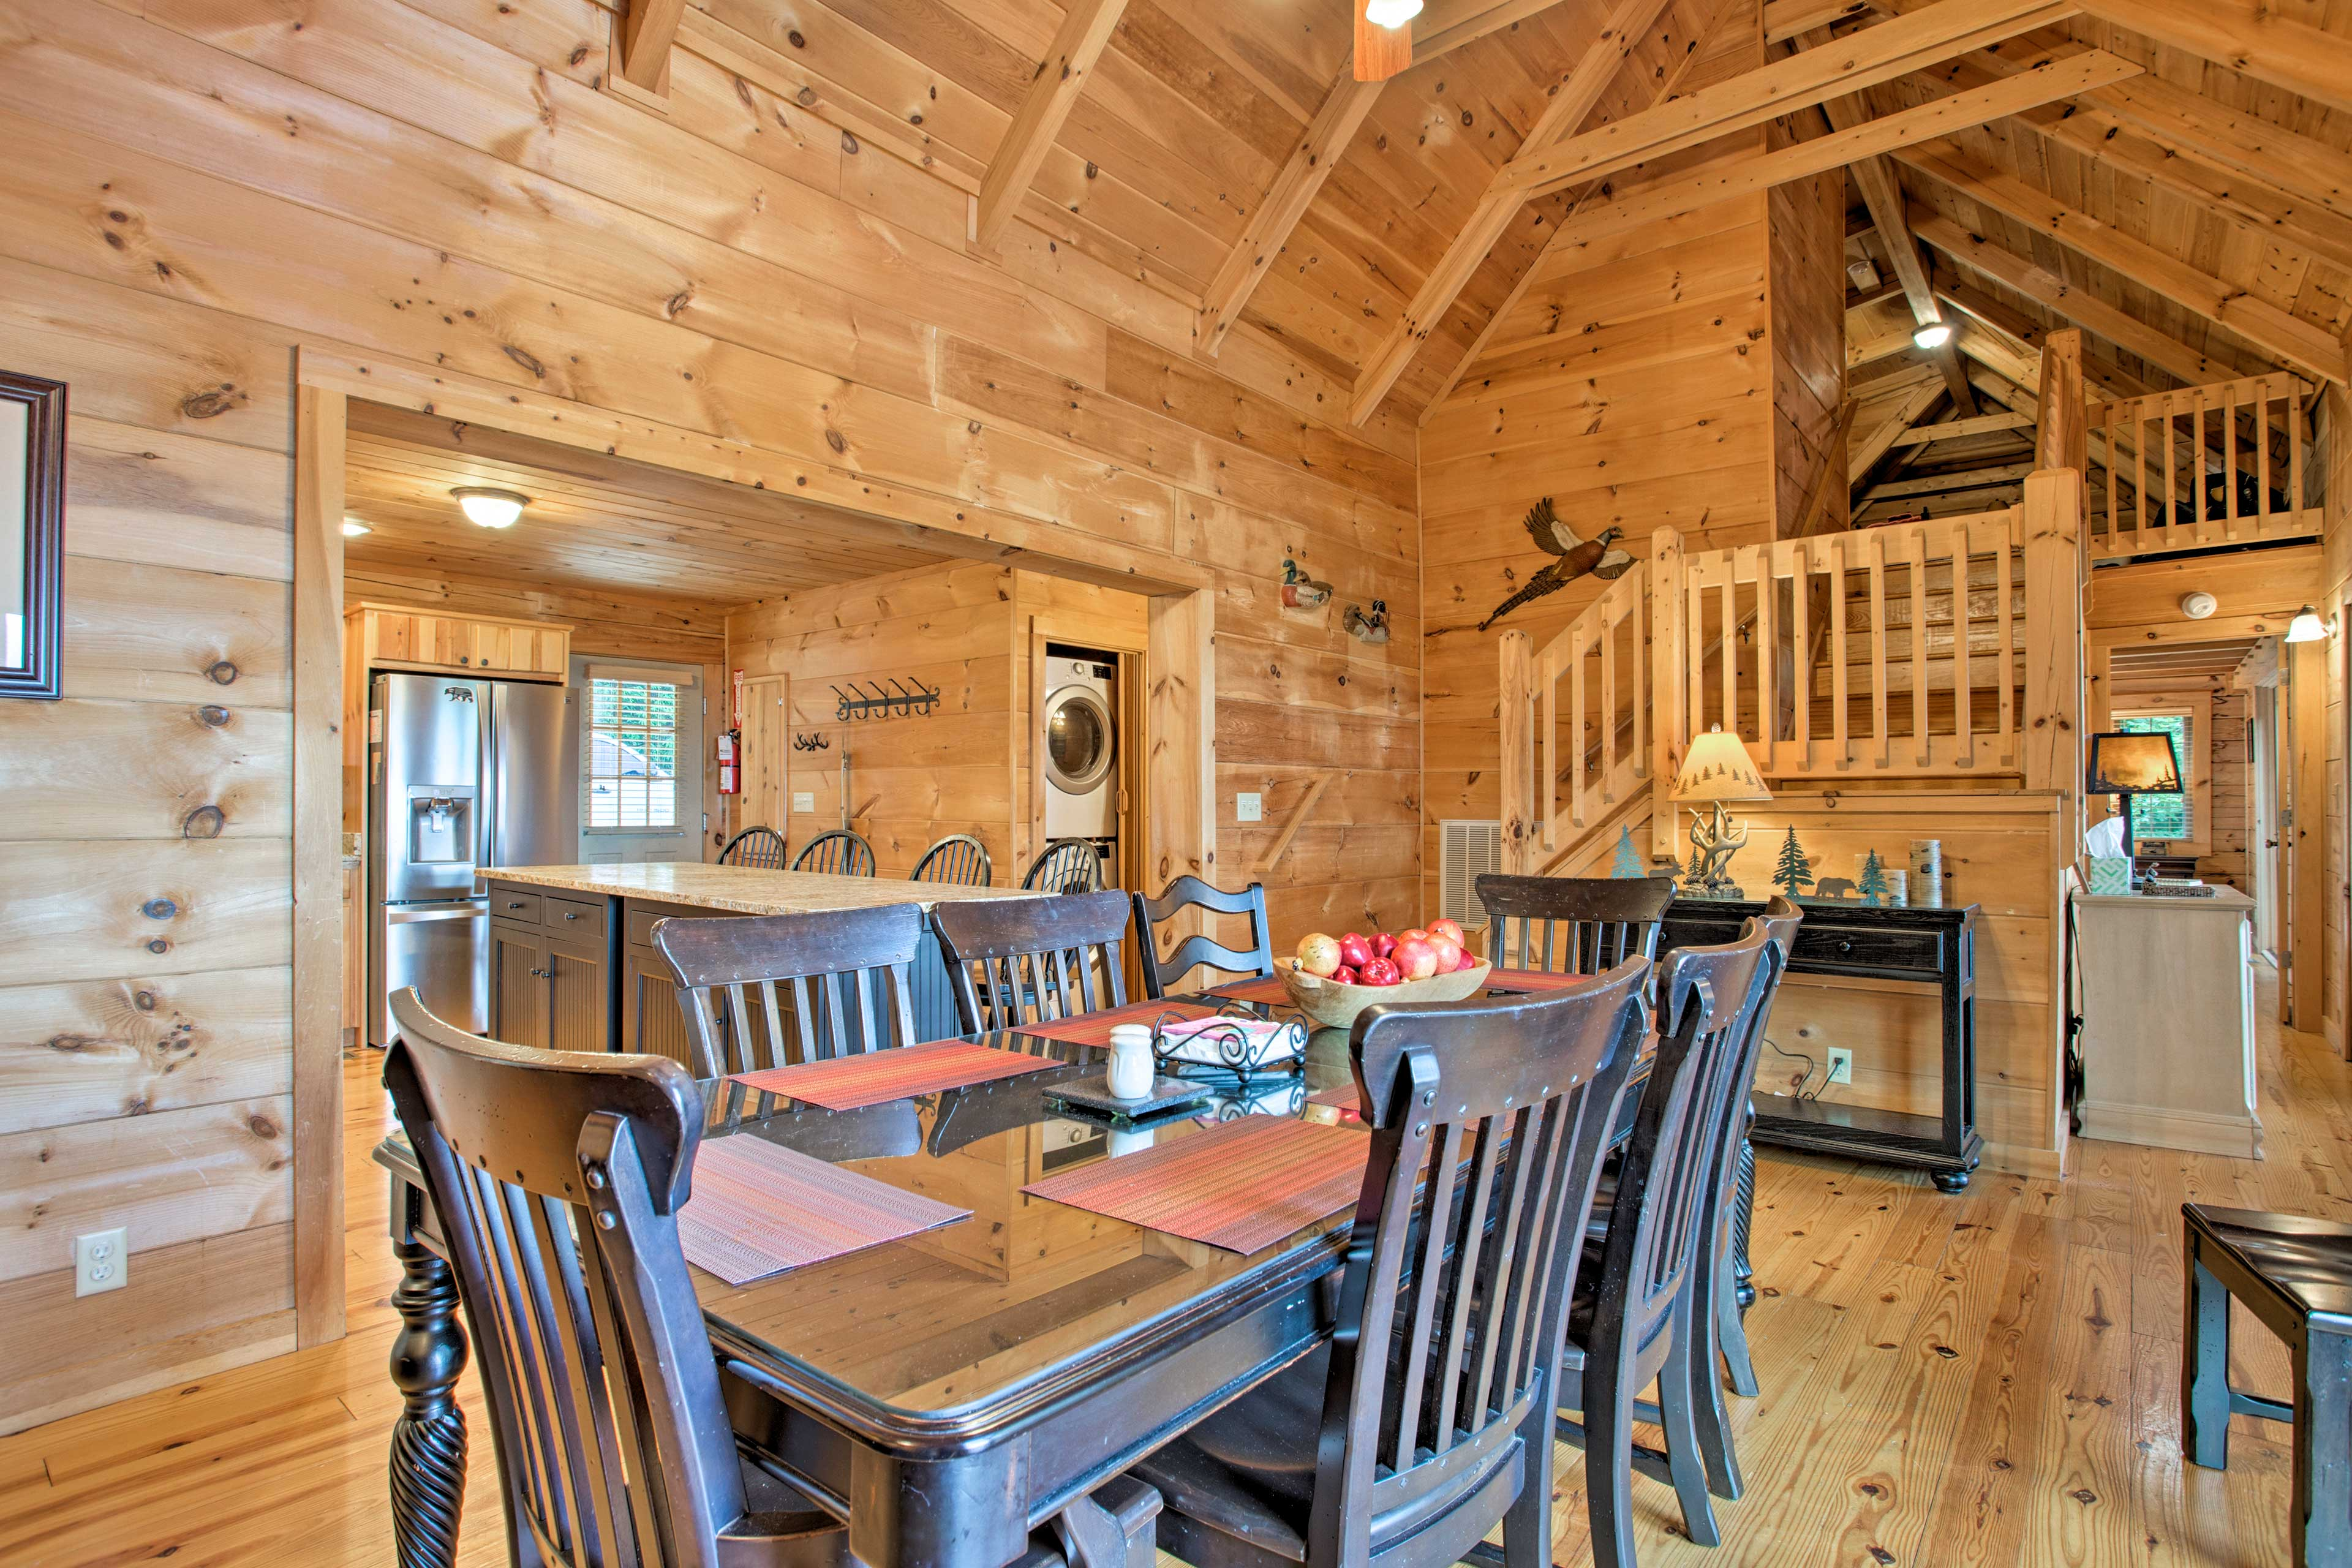 The spacious dining area offers seating for the whole family.